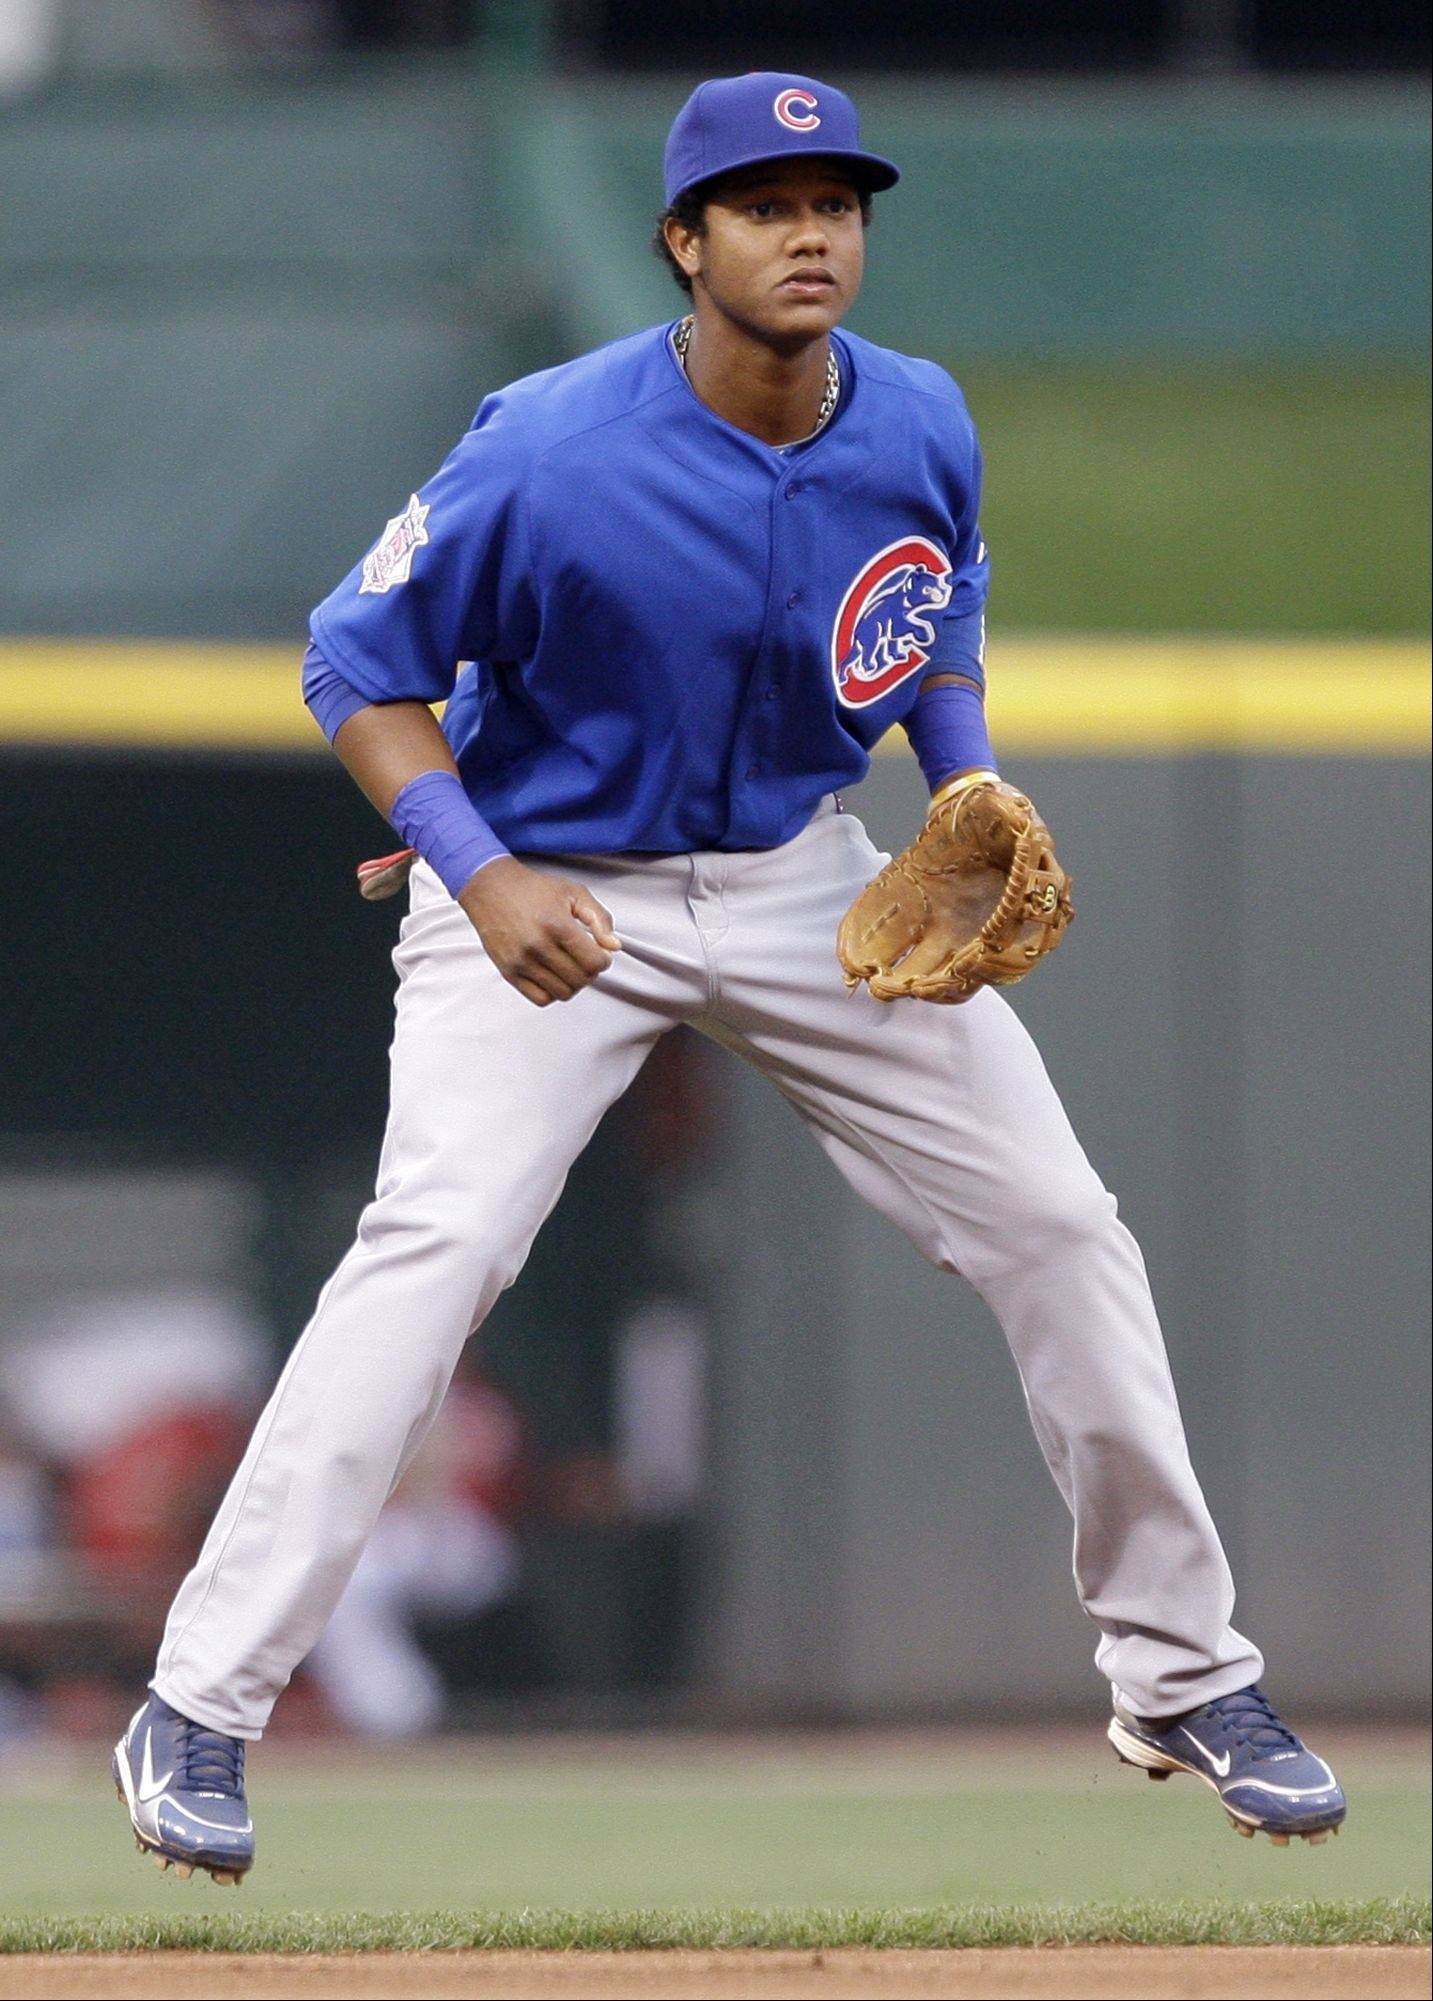 Cubs shortstop Starlin Castro looks to be on the verge of signing a seven-year, $60 million contract extension.